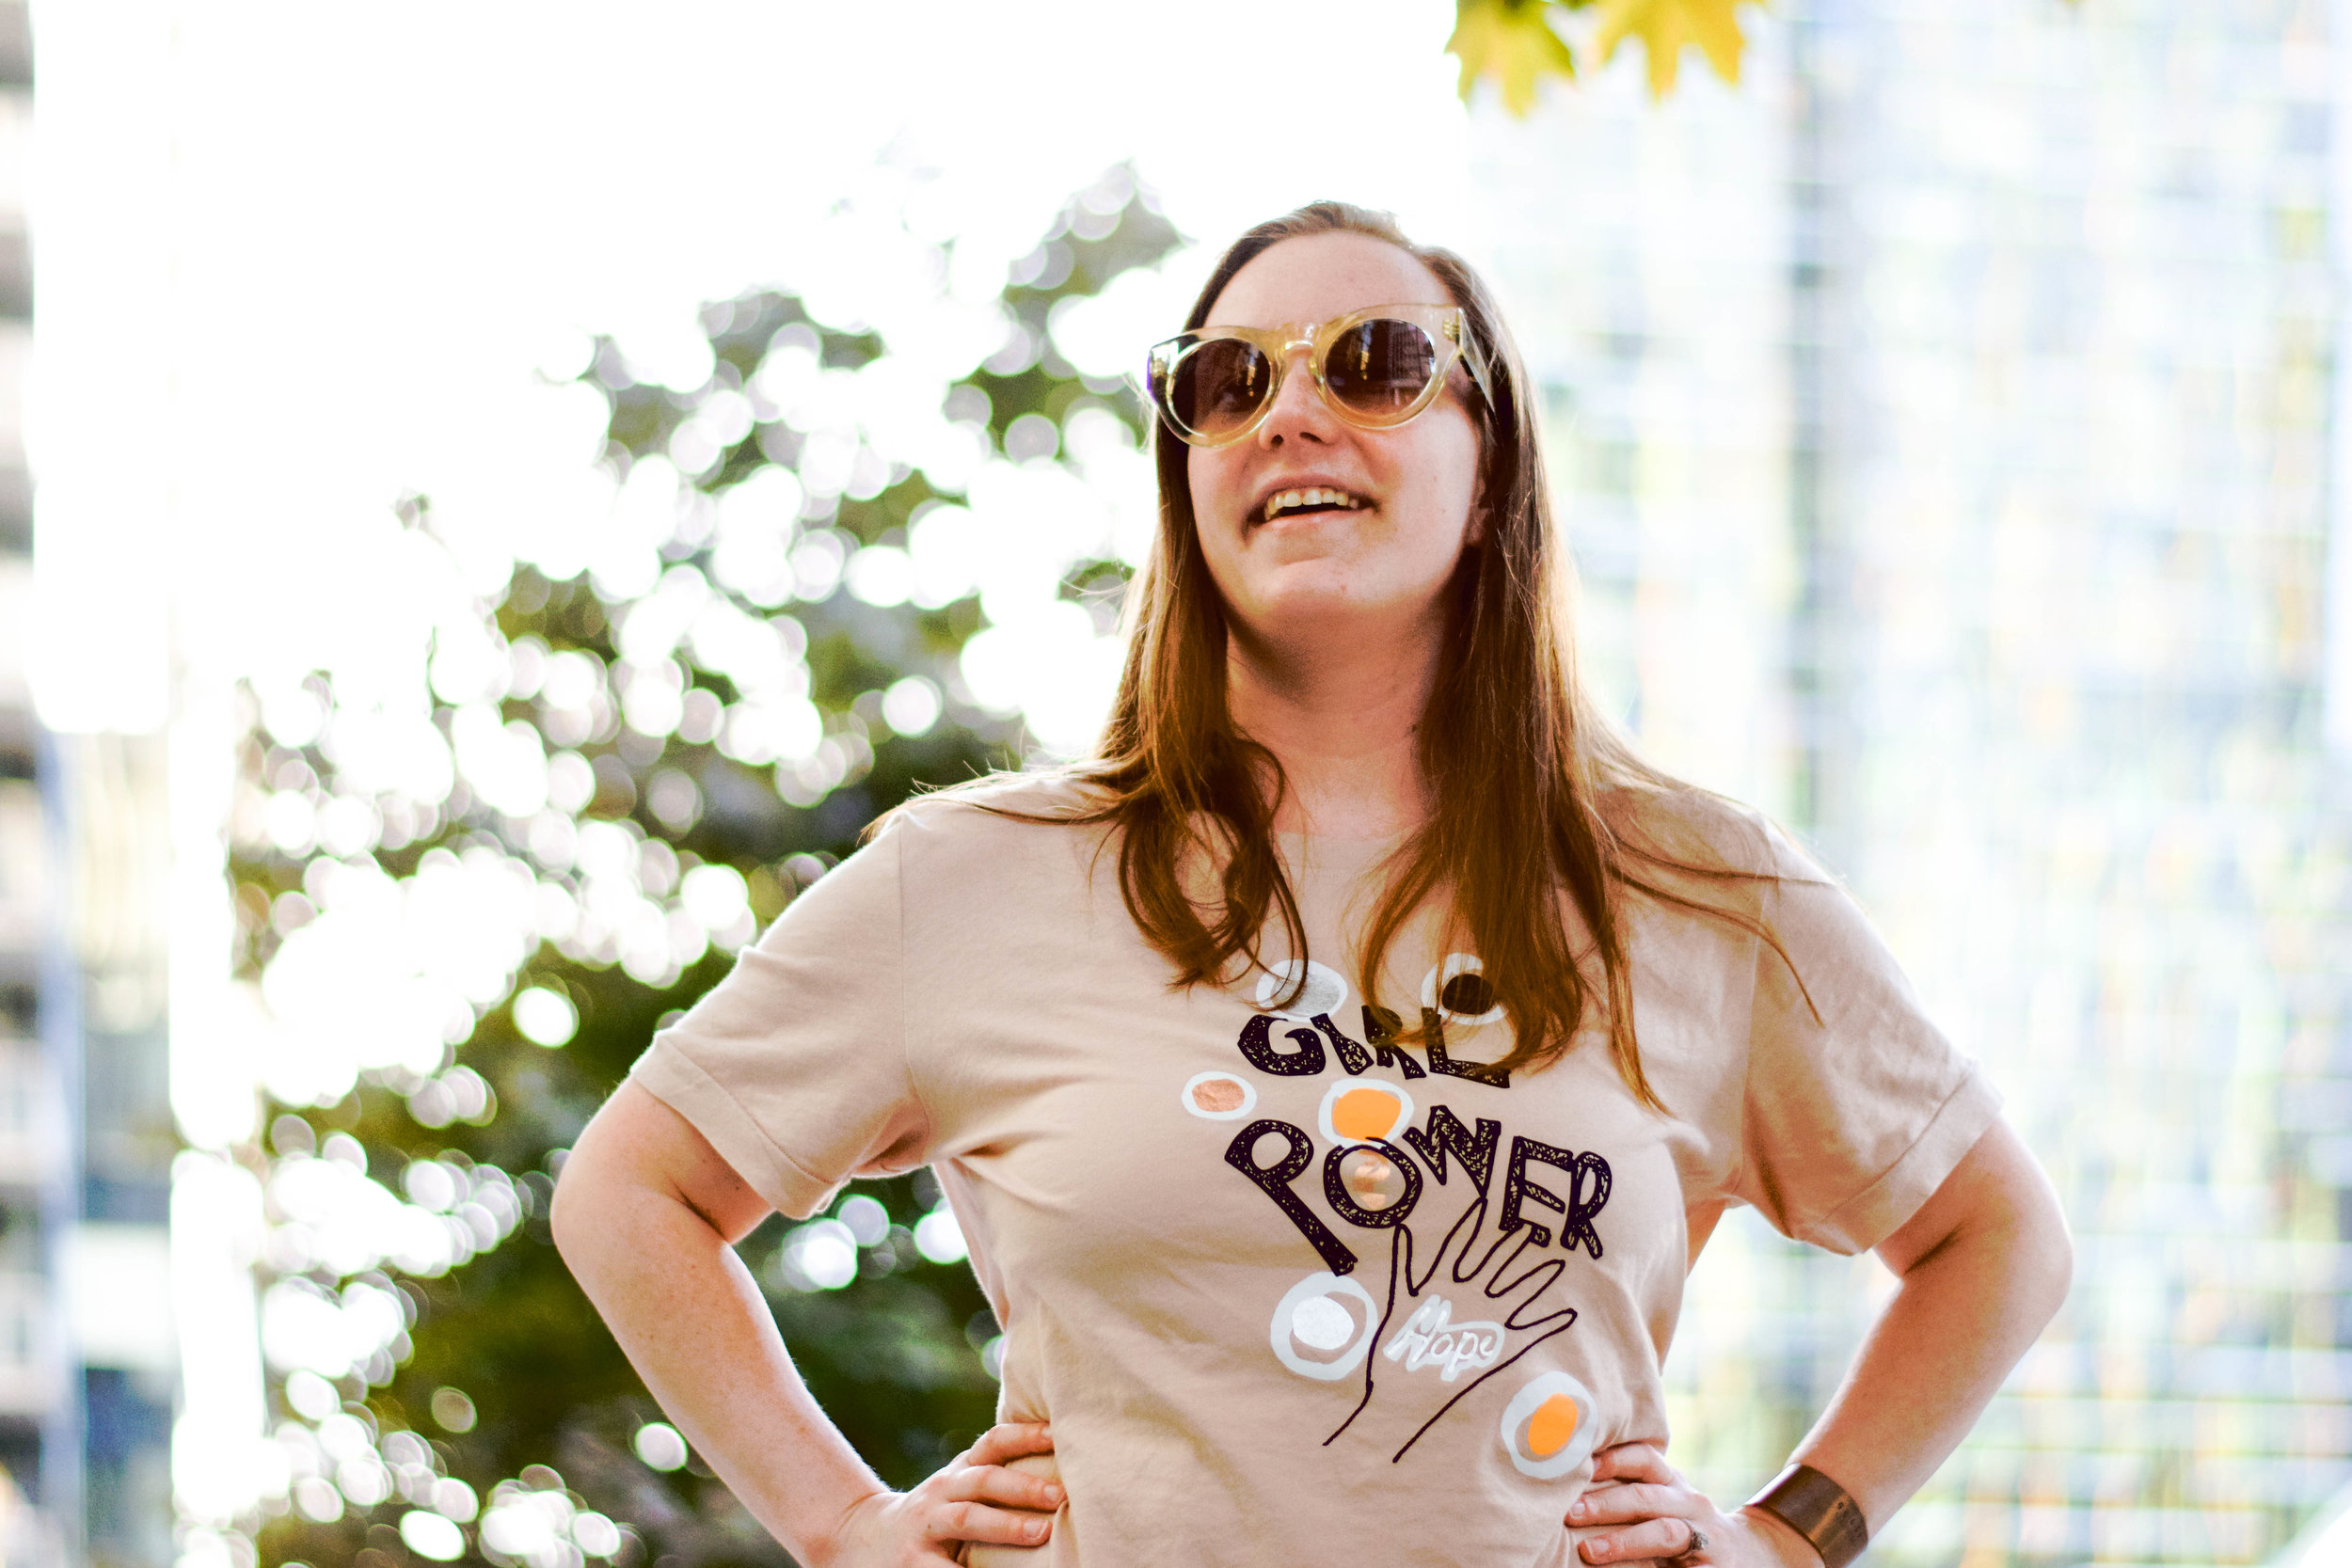 Ethically styled in:  Girl Power tee from ROUND + SQUARE ,  Medium Copper Cuff from BRANDED Collective,  &  Cleopatra Sunglasses from Dynamikos